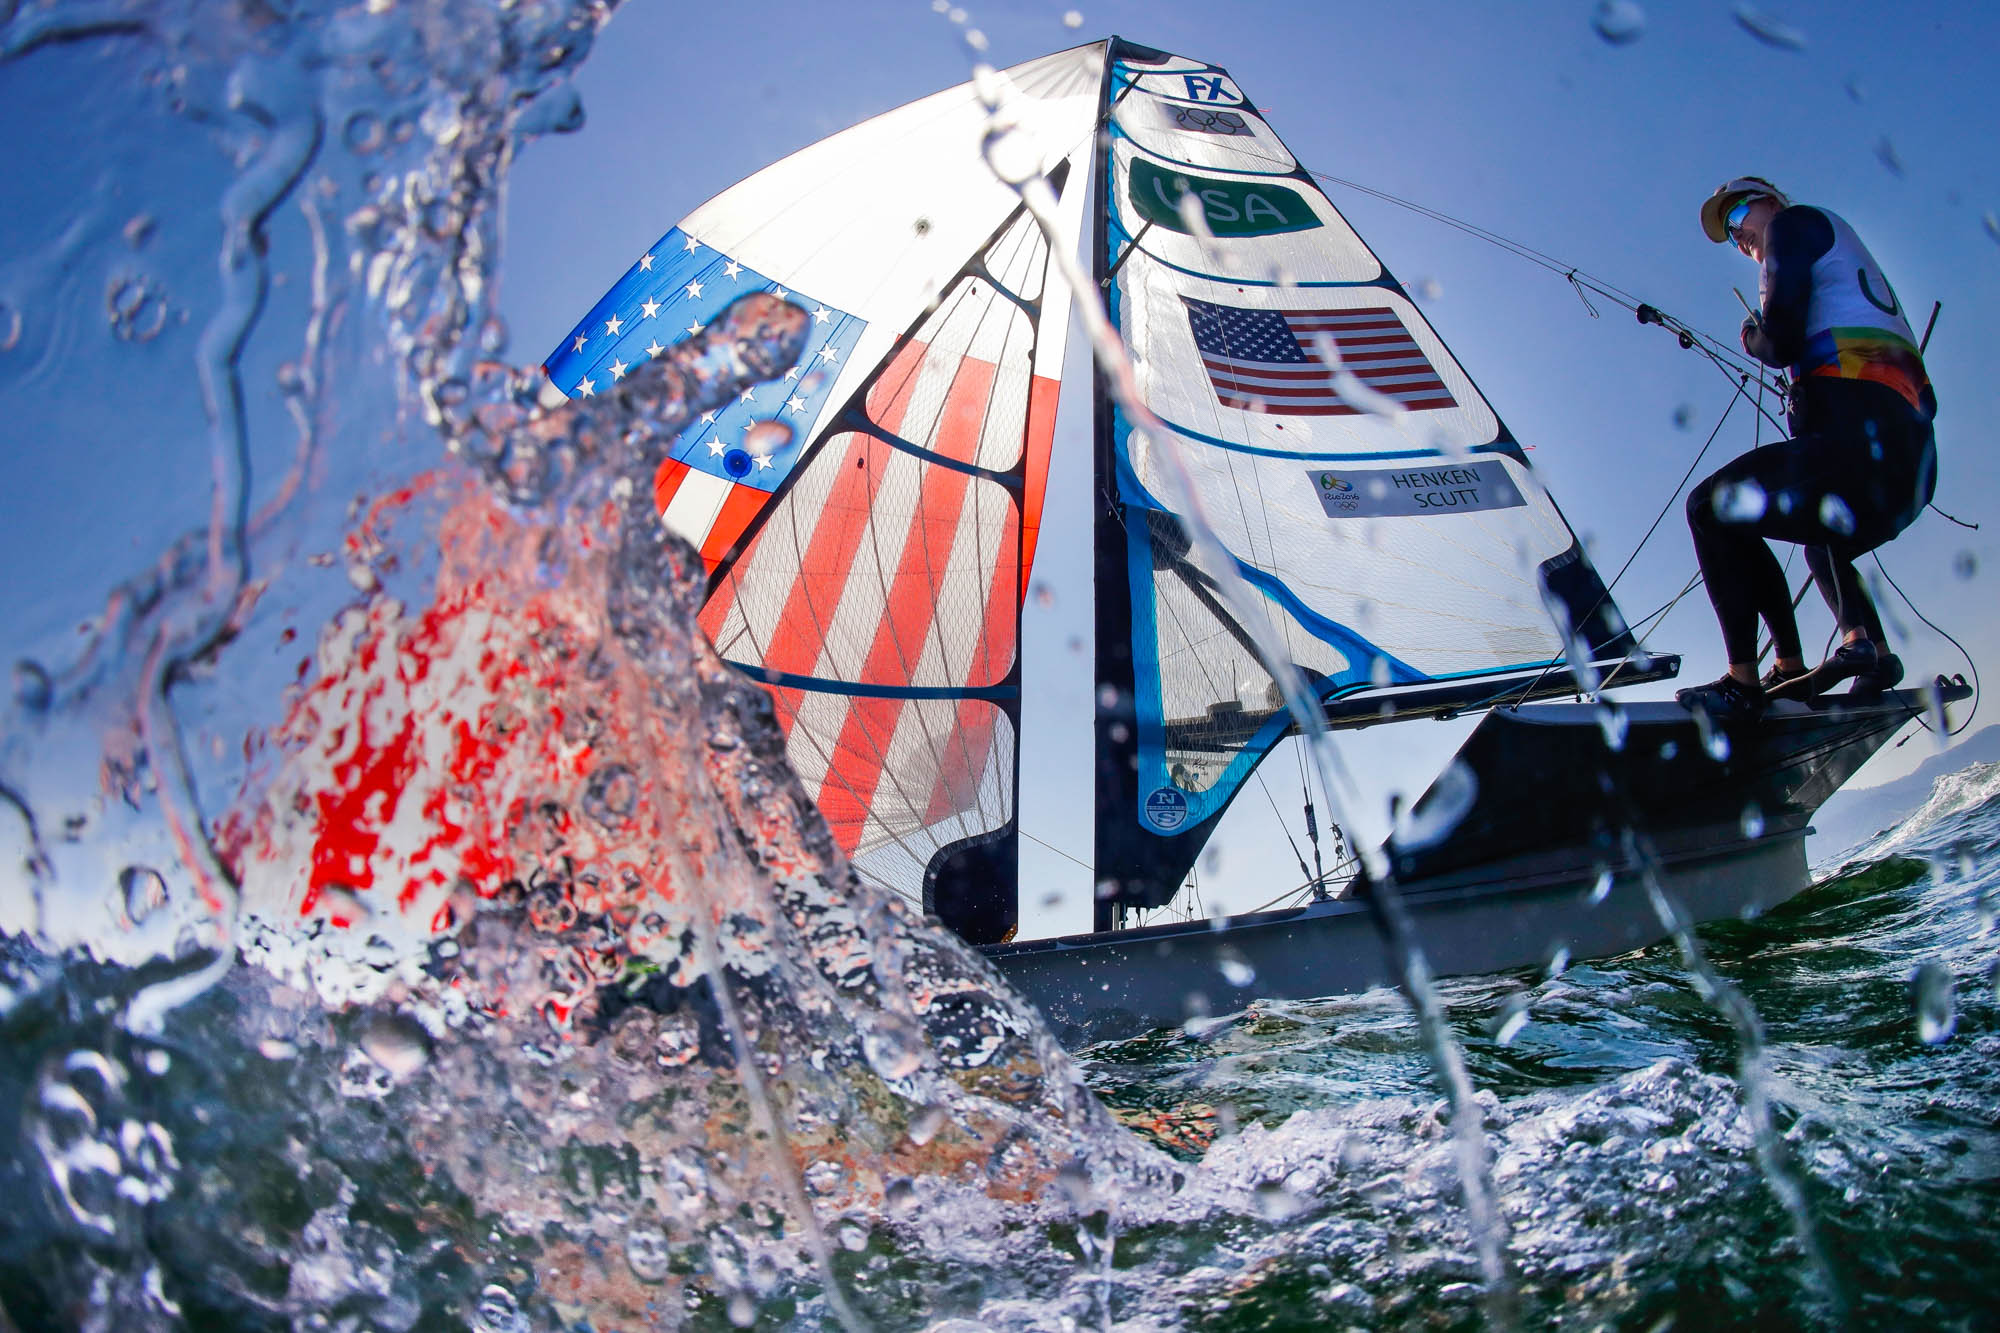 A sailboat in the water (© AP Images)